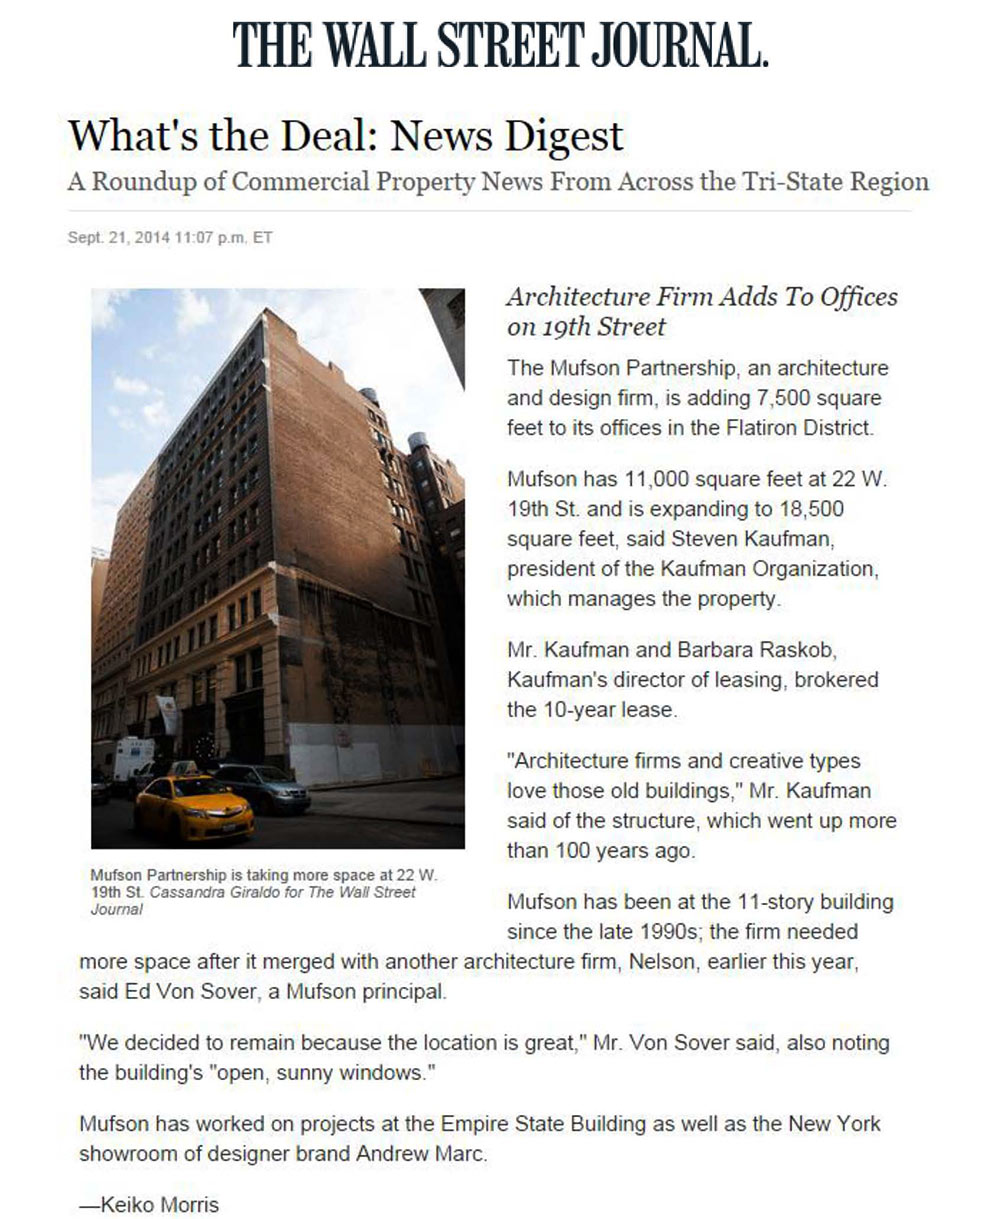 The-Wall-Street-Journal-(online)---What's-the-Deal---9.21.14